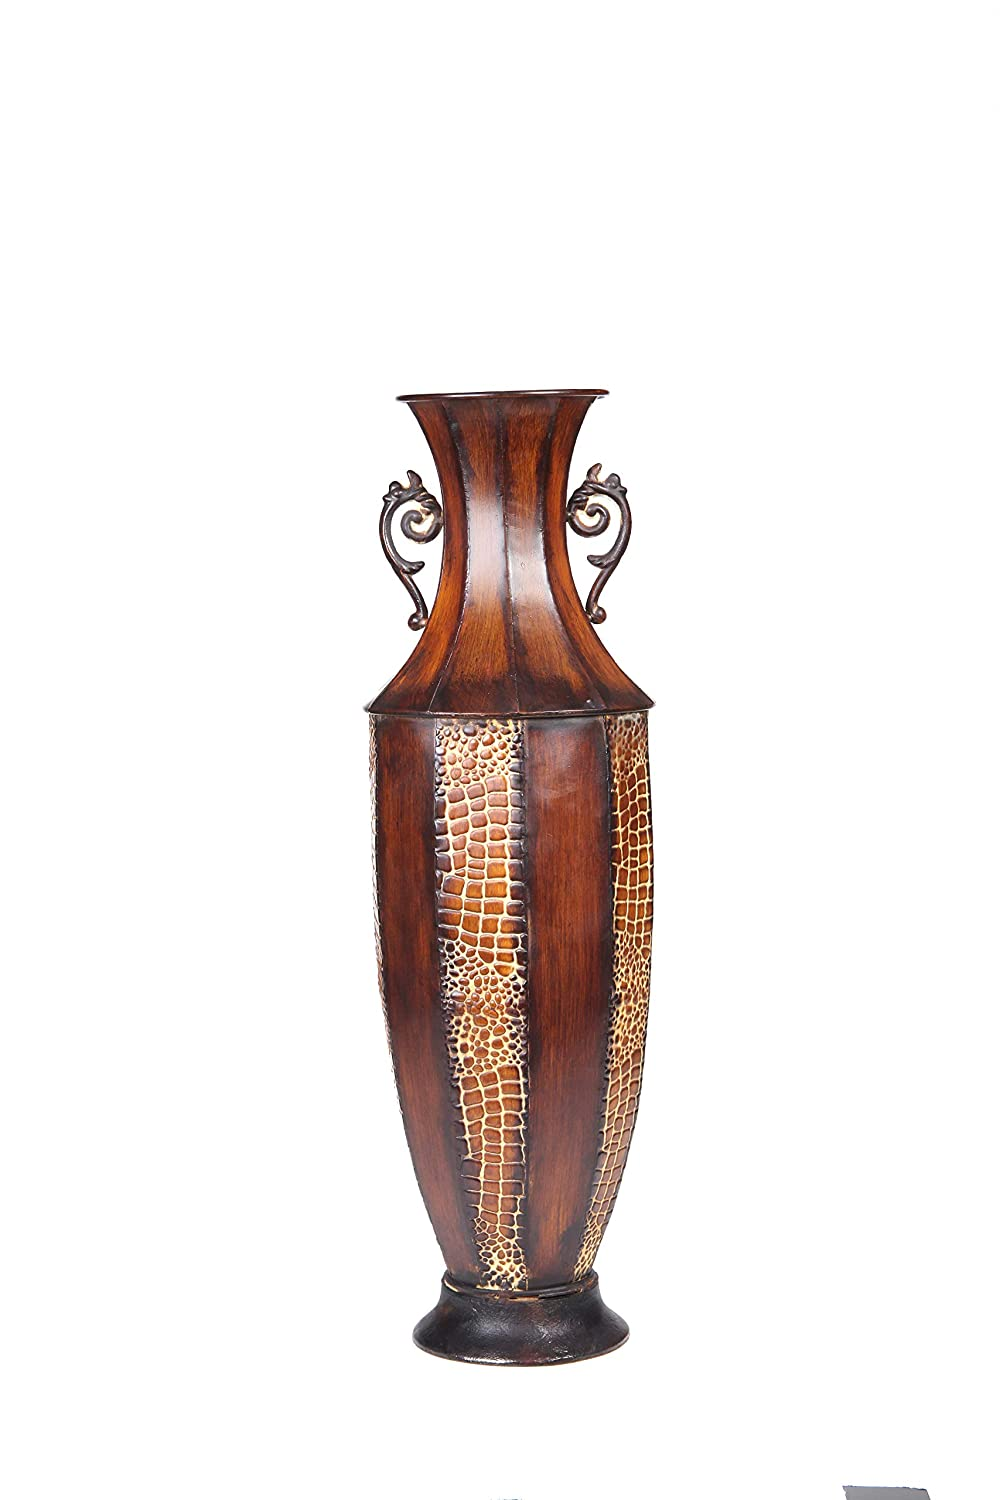 Hosley 18 Inch High Iron Embossed Tall Floor Vase Ideal Gift for Wedding and Special Occasions Great for The Den or Study as Well as The Family Room or Home Office O3